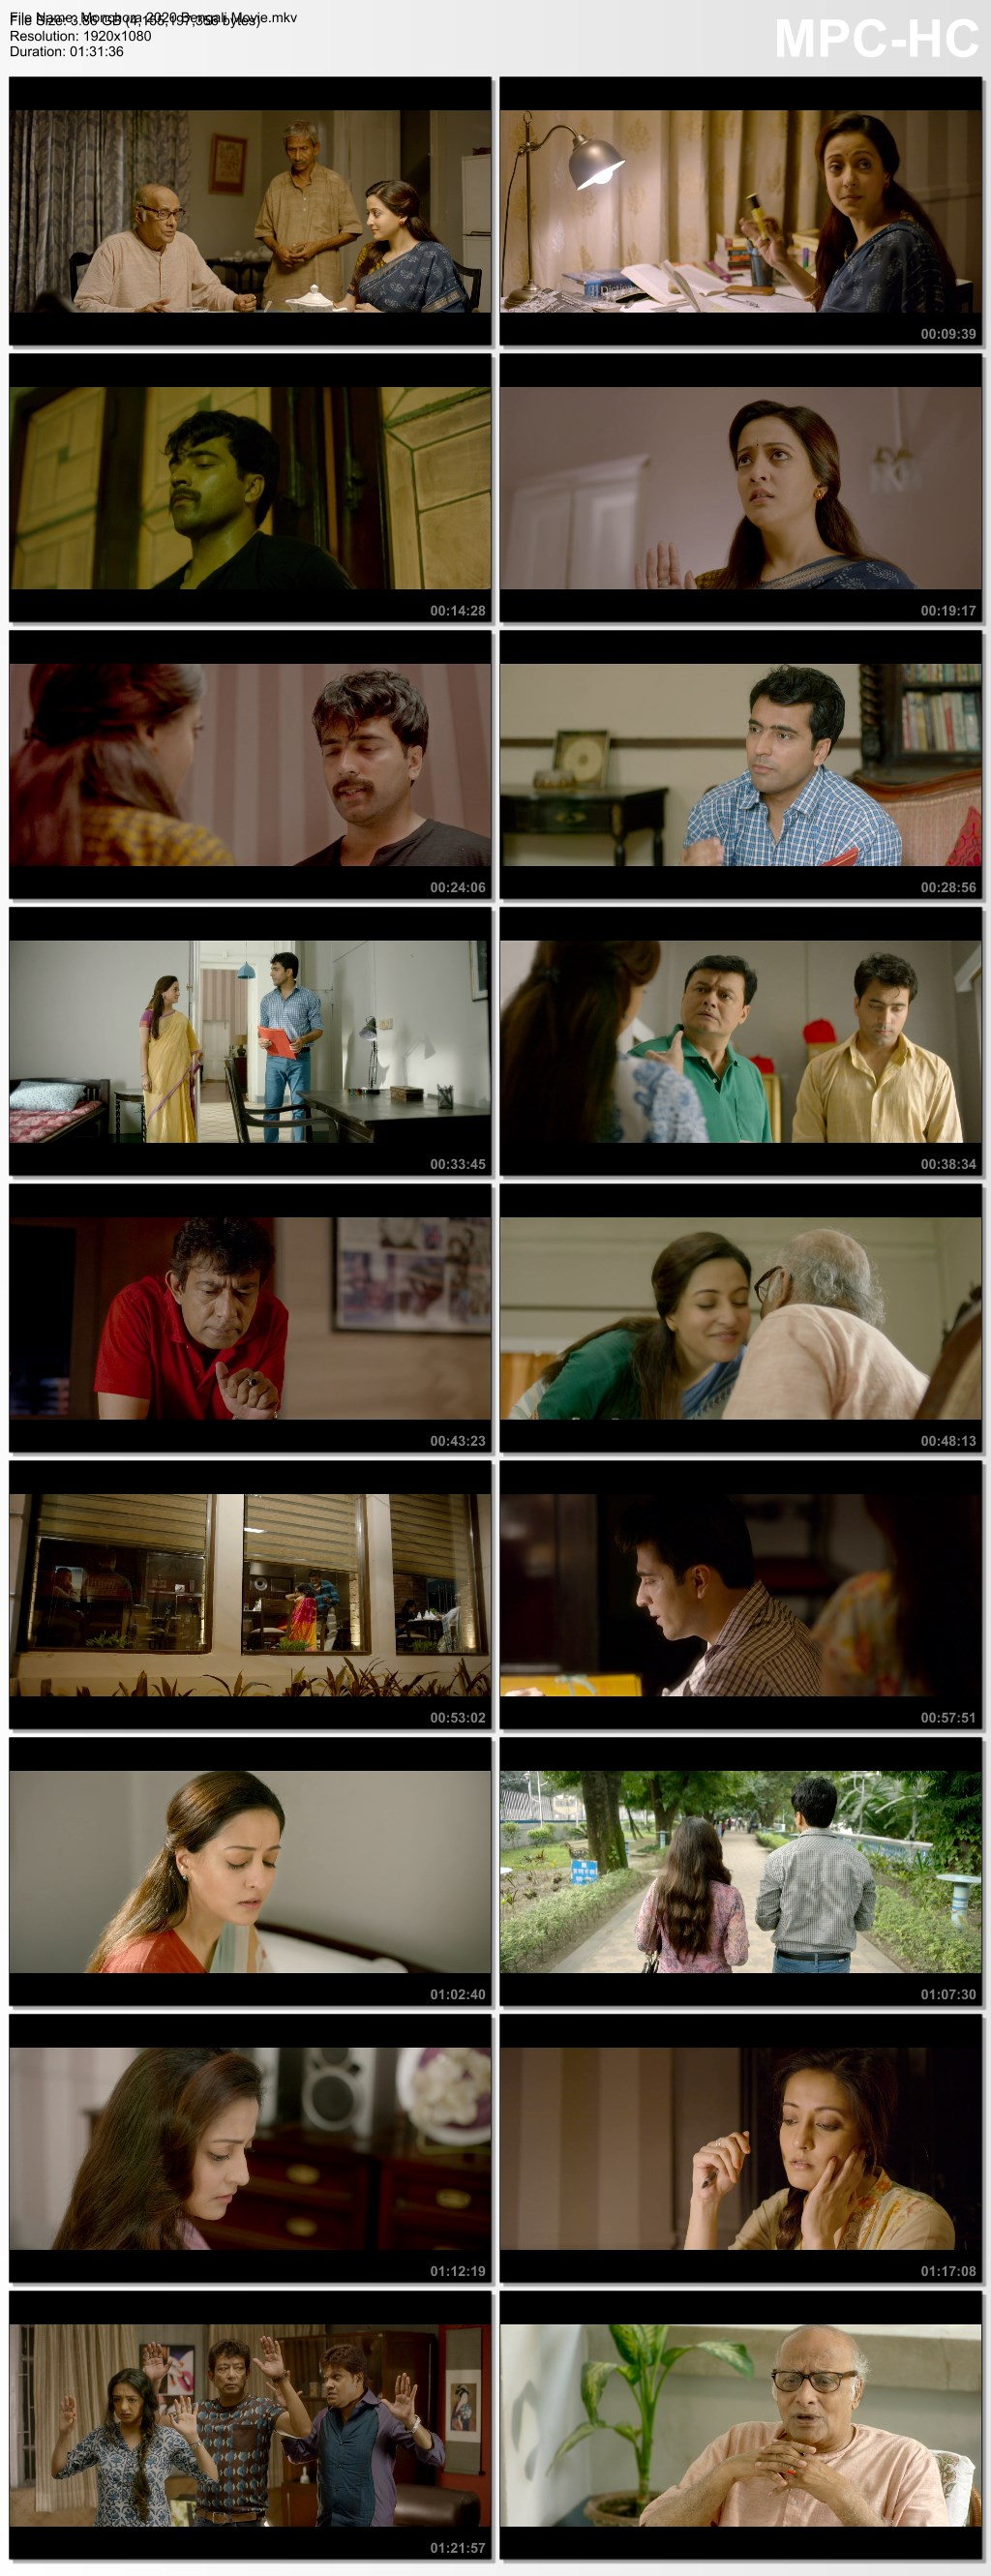 Monchora2020BengaliMovie.mkv_thumbs_2020.04.02_16.41.540b025.jpg